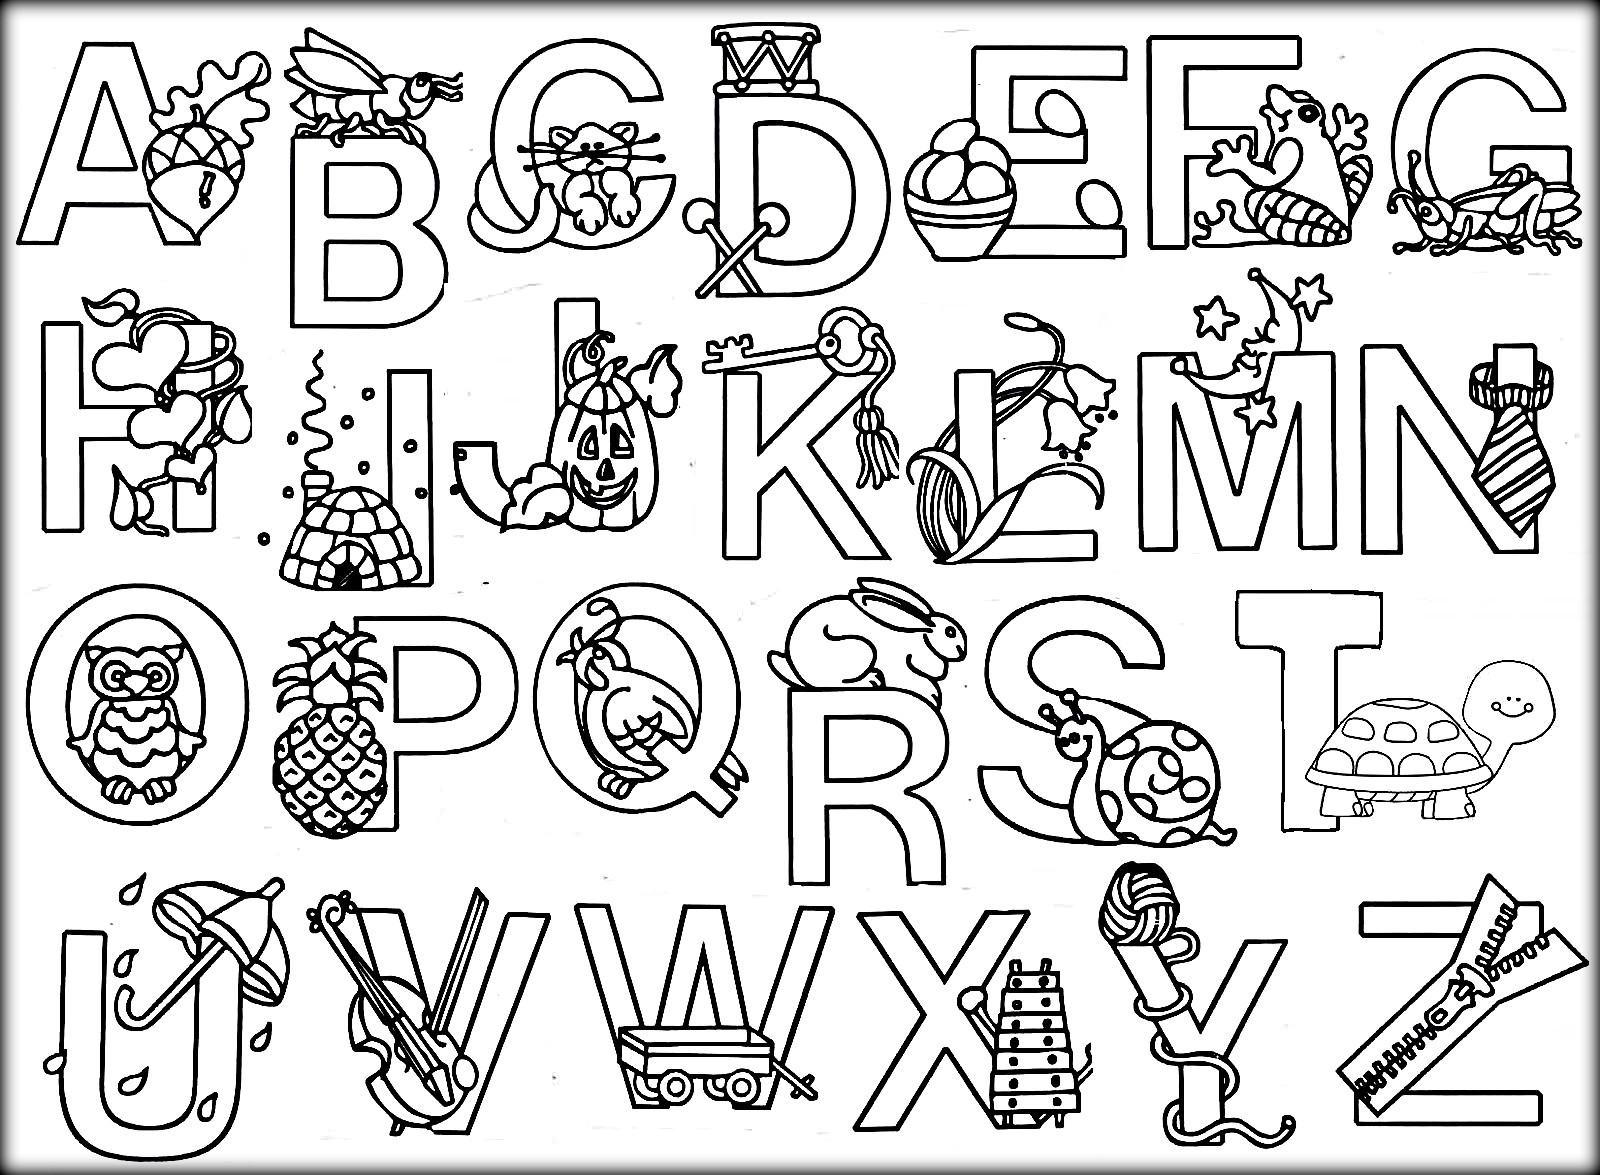 Free Printable Alphabet Coloring Pages at GetDrawings